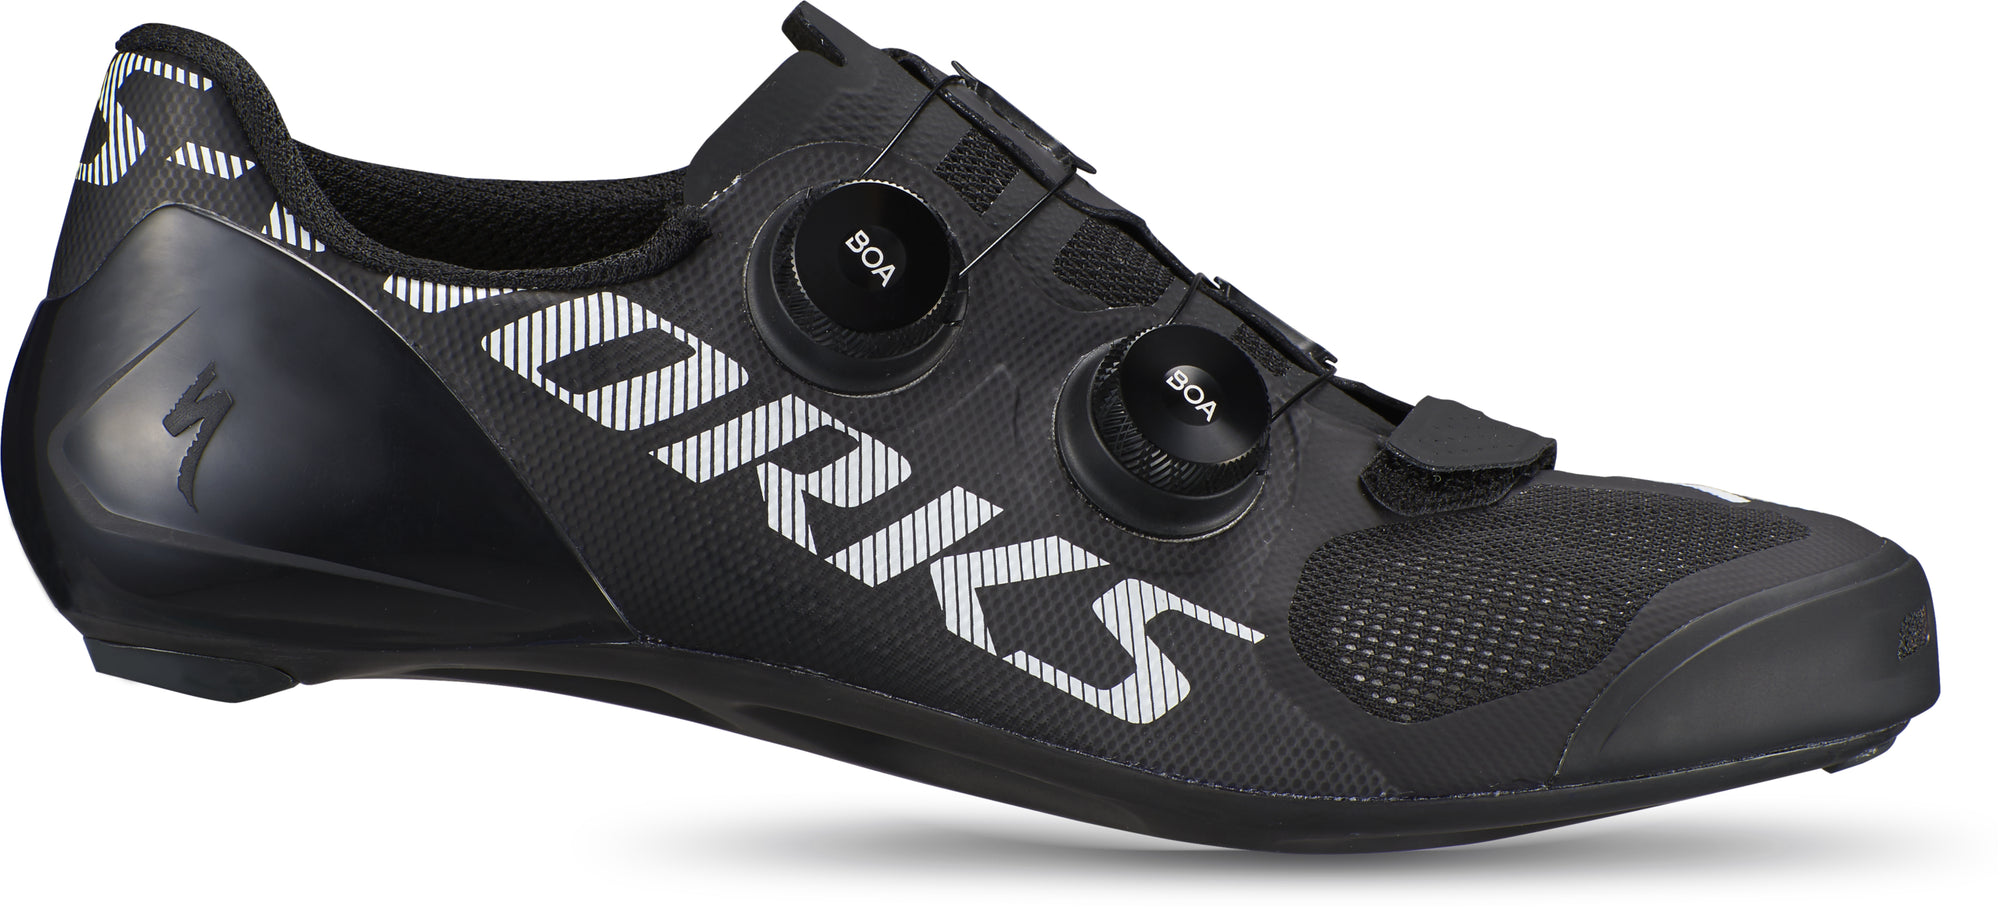 S-Works Vent Road Shoes